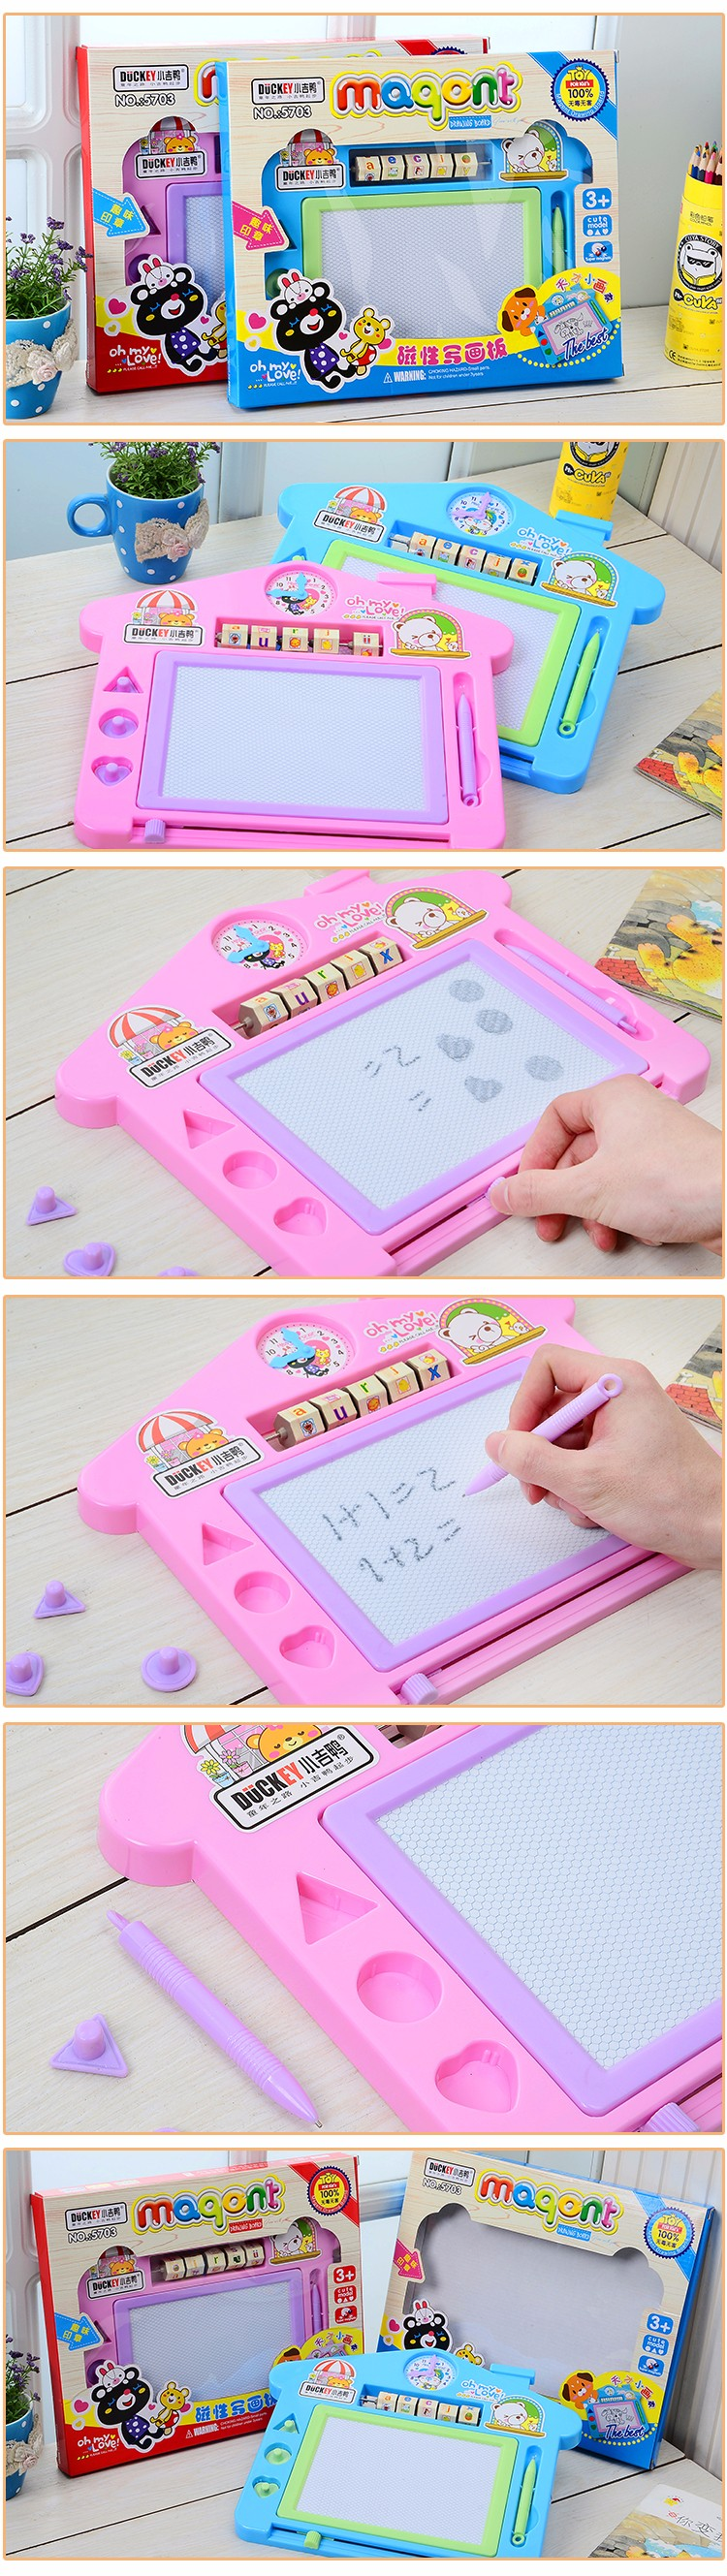 Latest arrival kids stationery colorful magnetic drawing board for kids